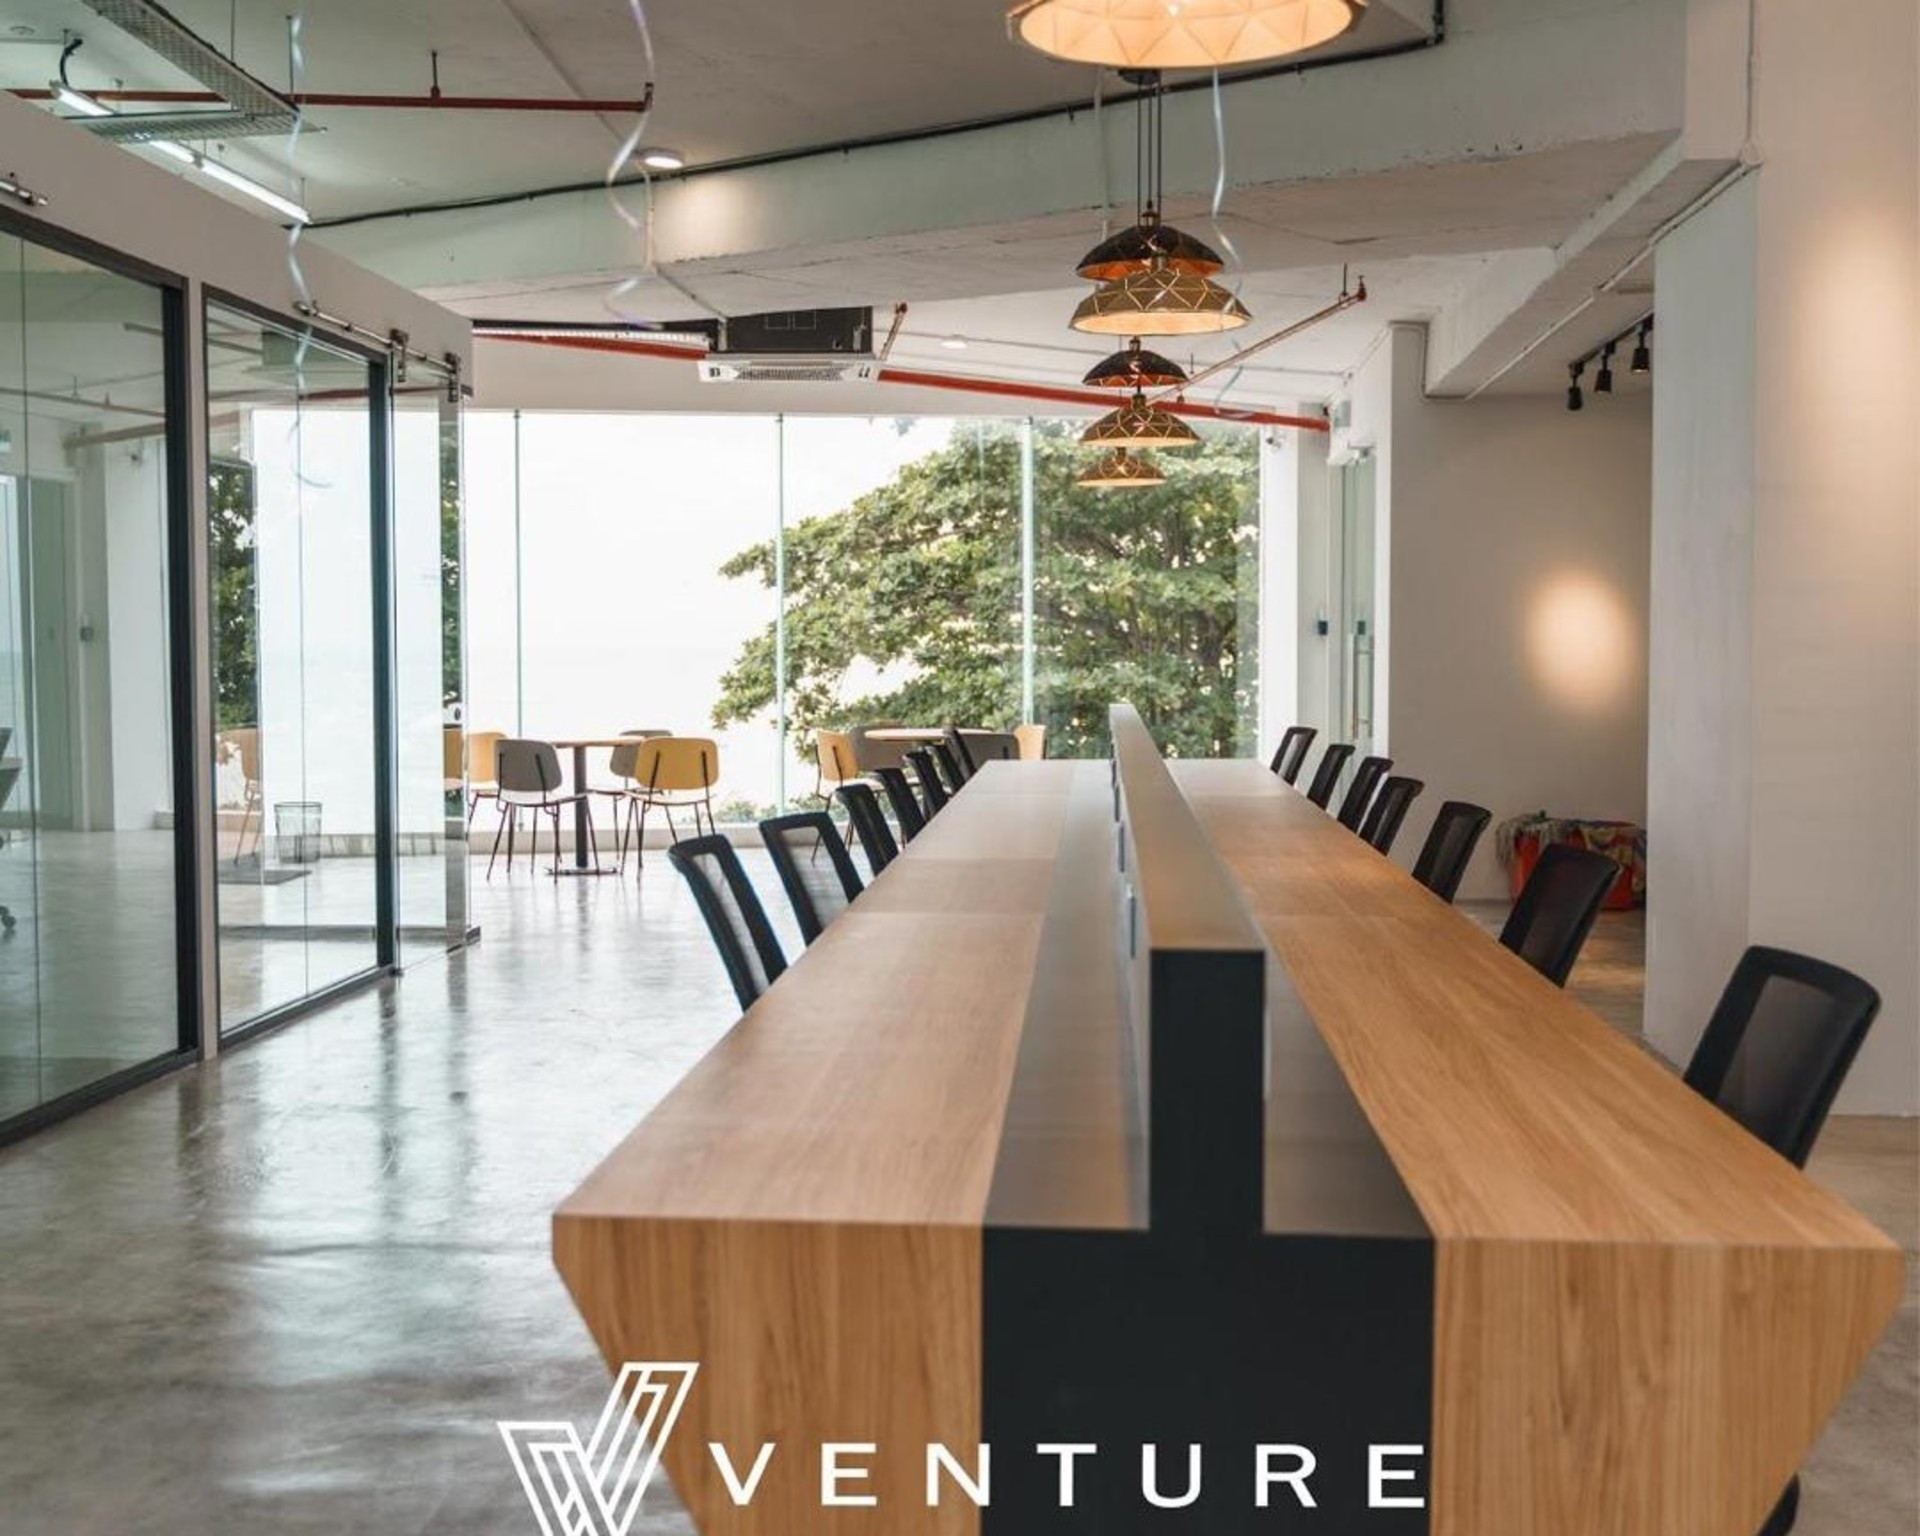 The Venture Coworking Space